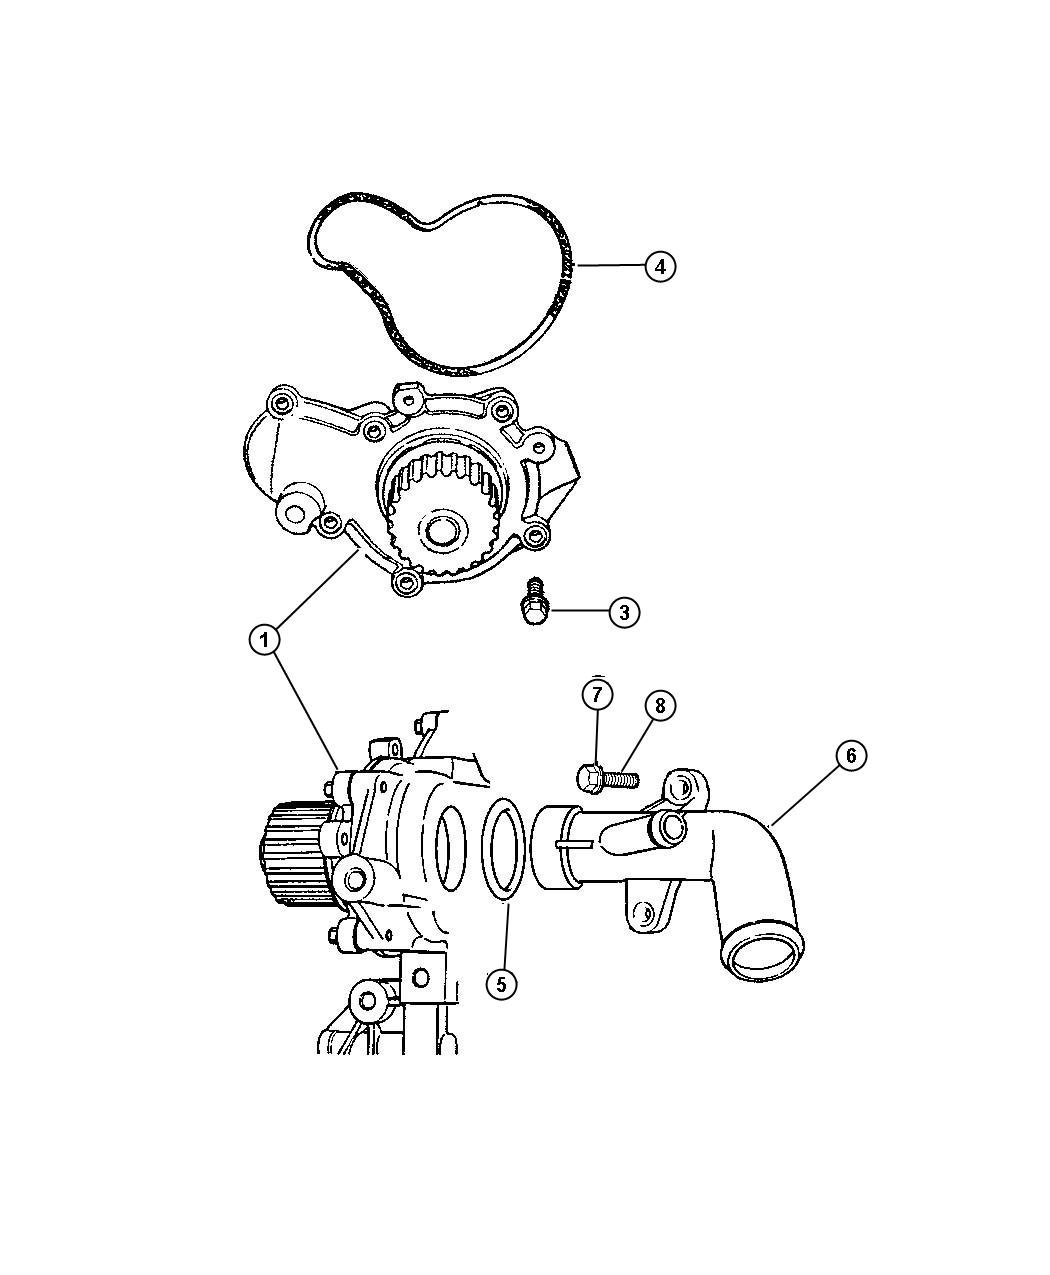 P 0996b43f8037e77c also Water Pump Scat furthermore Dodge Caliber Water Pump Location additionally 92 Dodge Stealth Fuse Box Diagram in addition Saab 2004 9 3 Engine Diagram. on water pump 98 neon